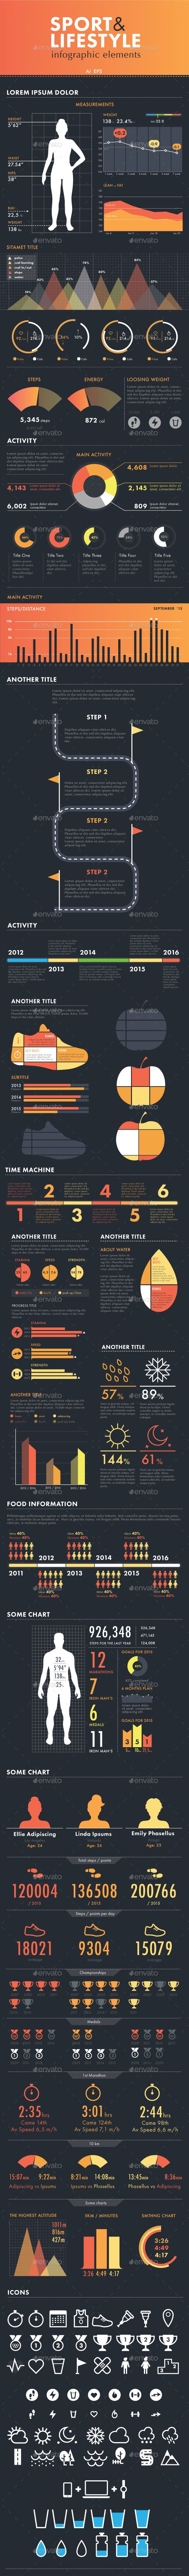 Sport & Lifestyle Infographic Template Set. Download here: http://graphicriver.net/item/sport-lifestyle-infographic-set/15100152?ref=ksioks